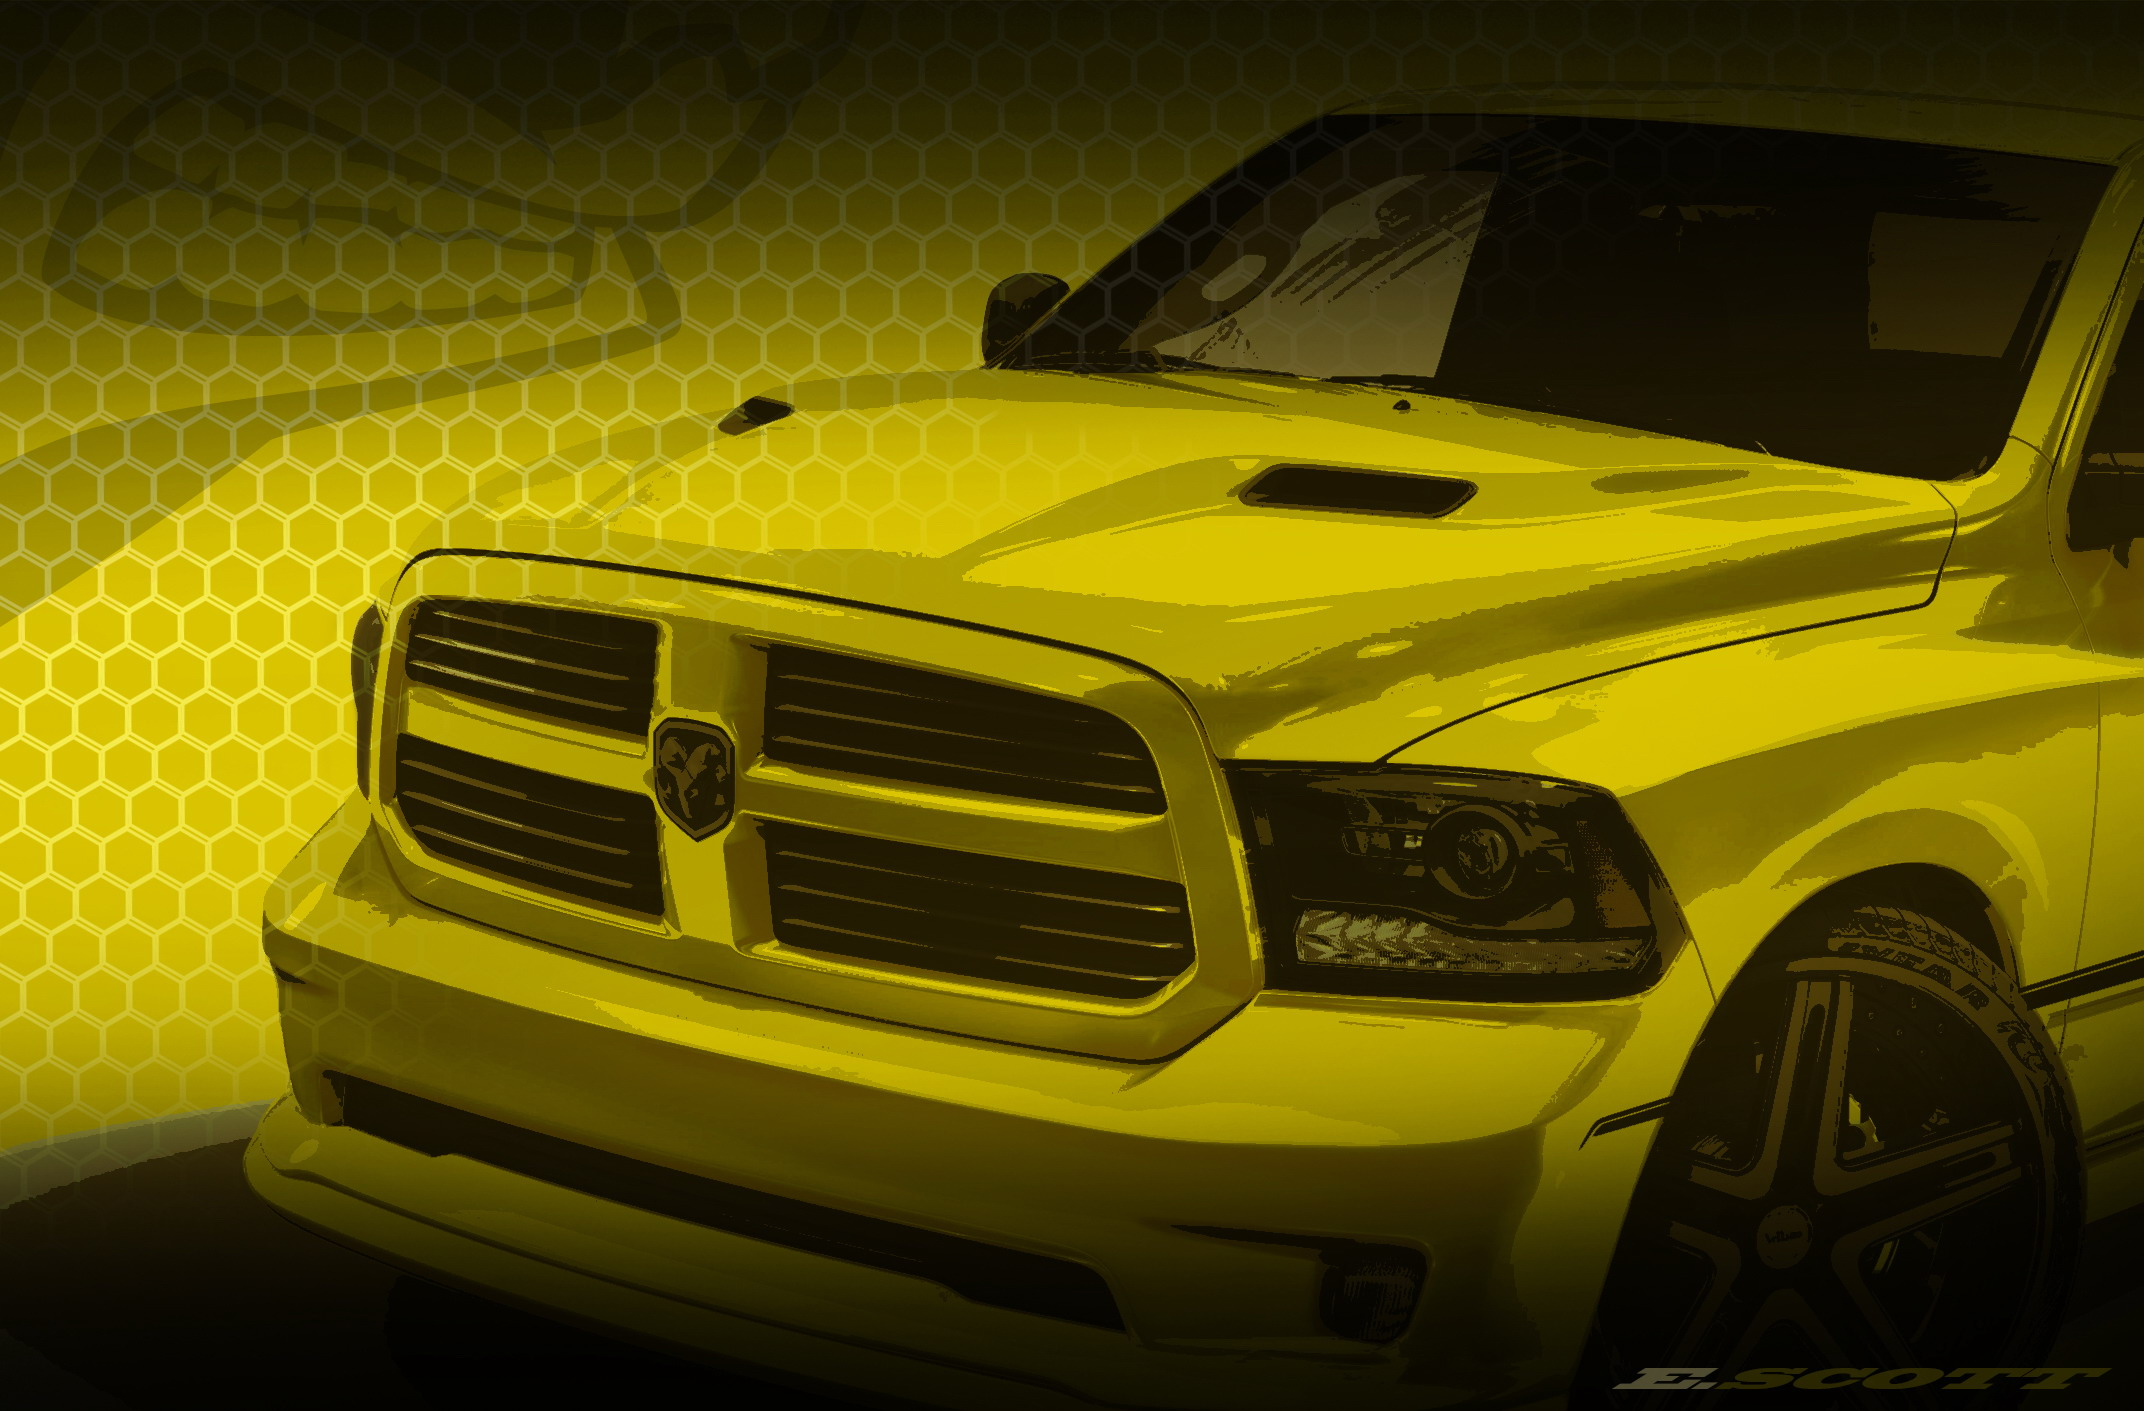 F 150 Tremor >> 2014 Ram 1500 Rumble Bee Concept Gallery 518892 | Top Speed